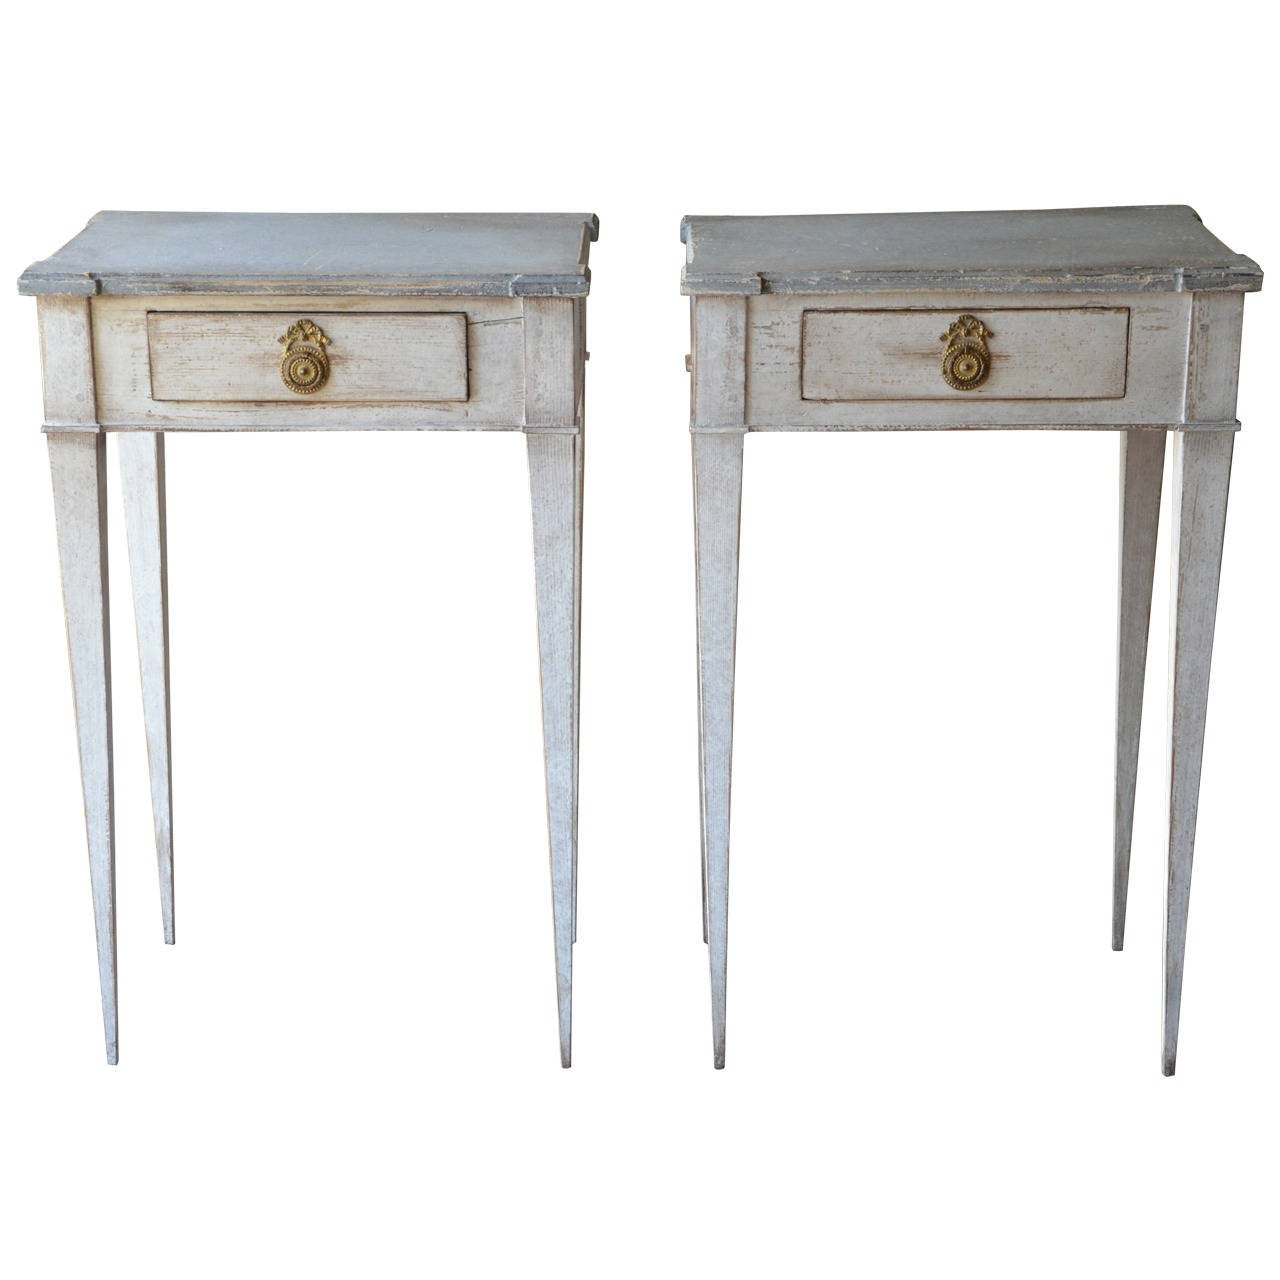 Pair of 19th century swedish gustavian side tables at 1stdibs for Oka gustavian side table